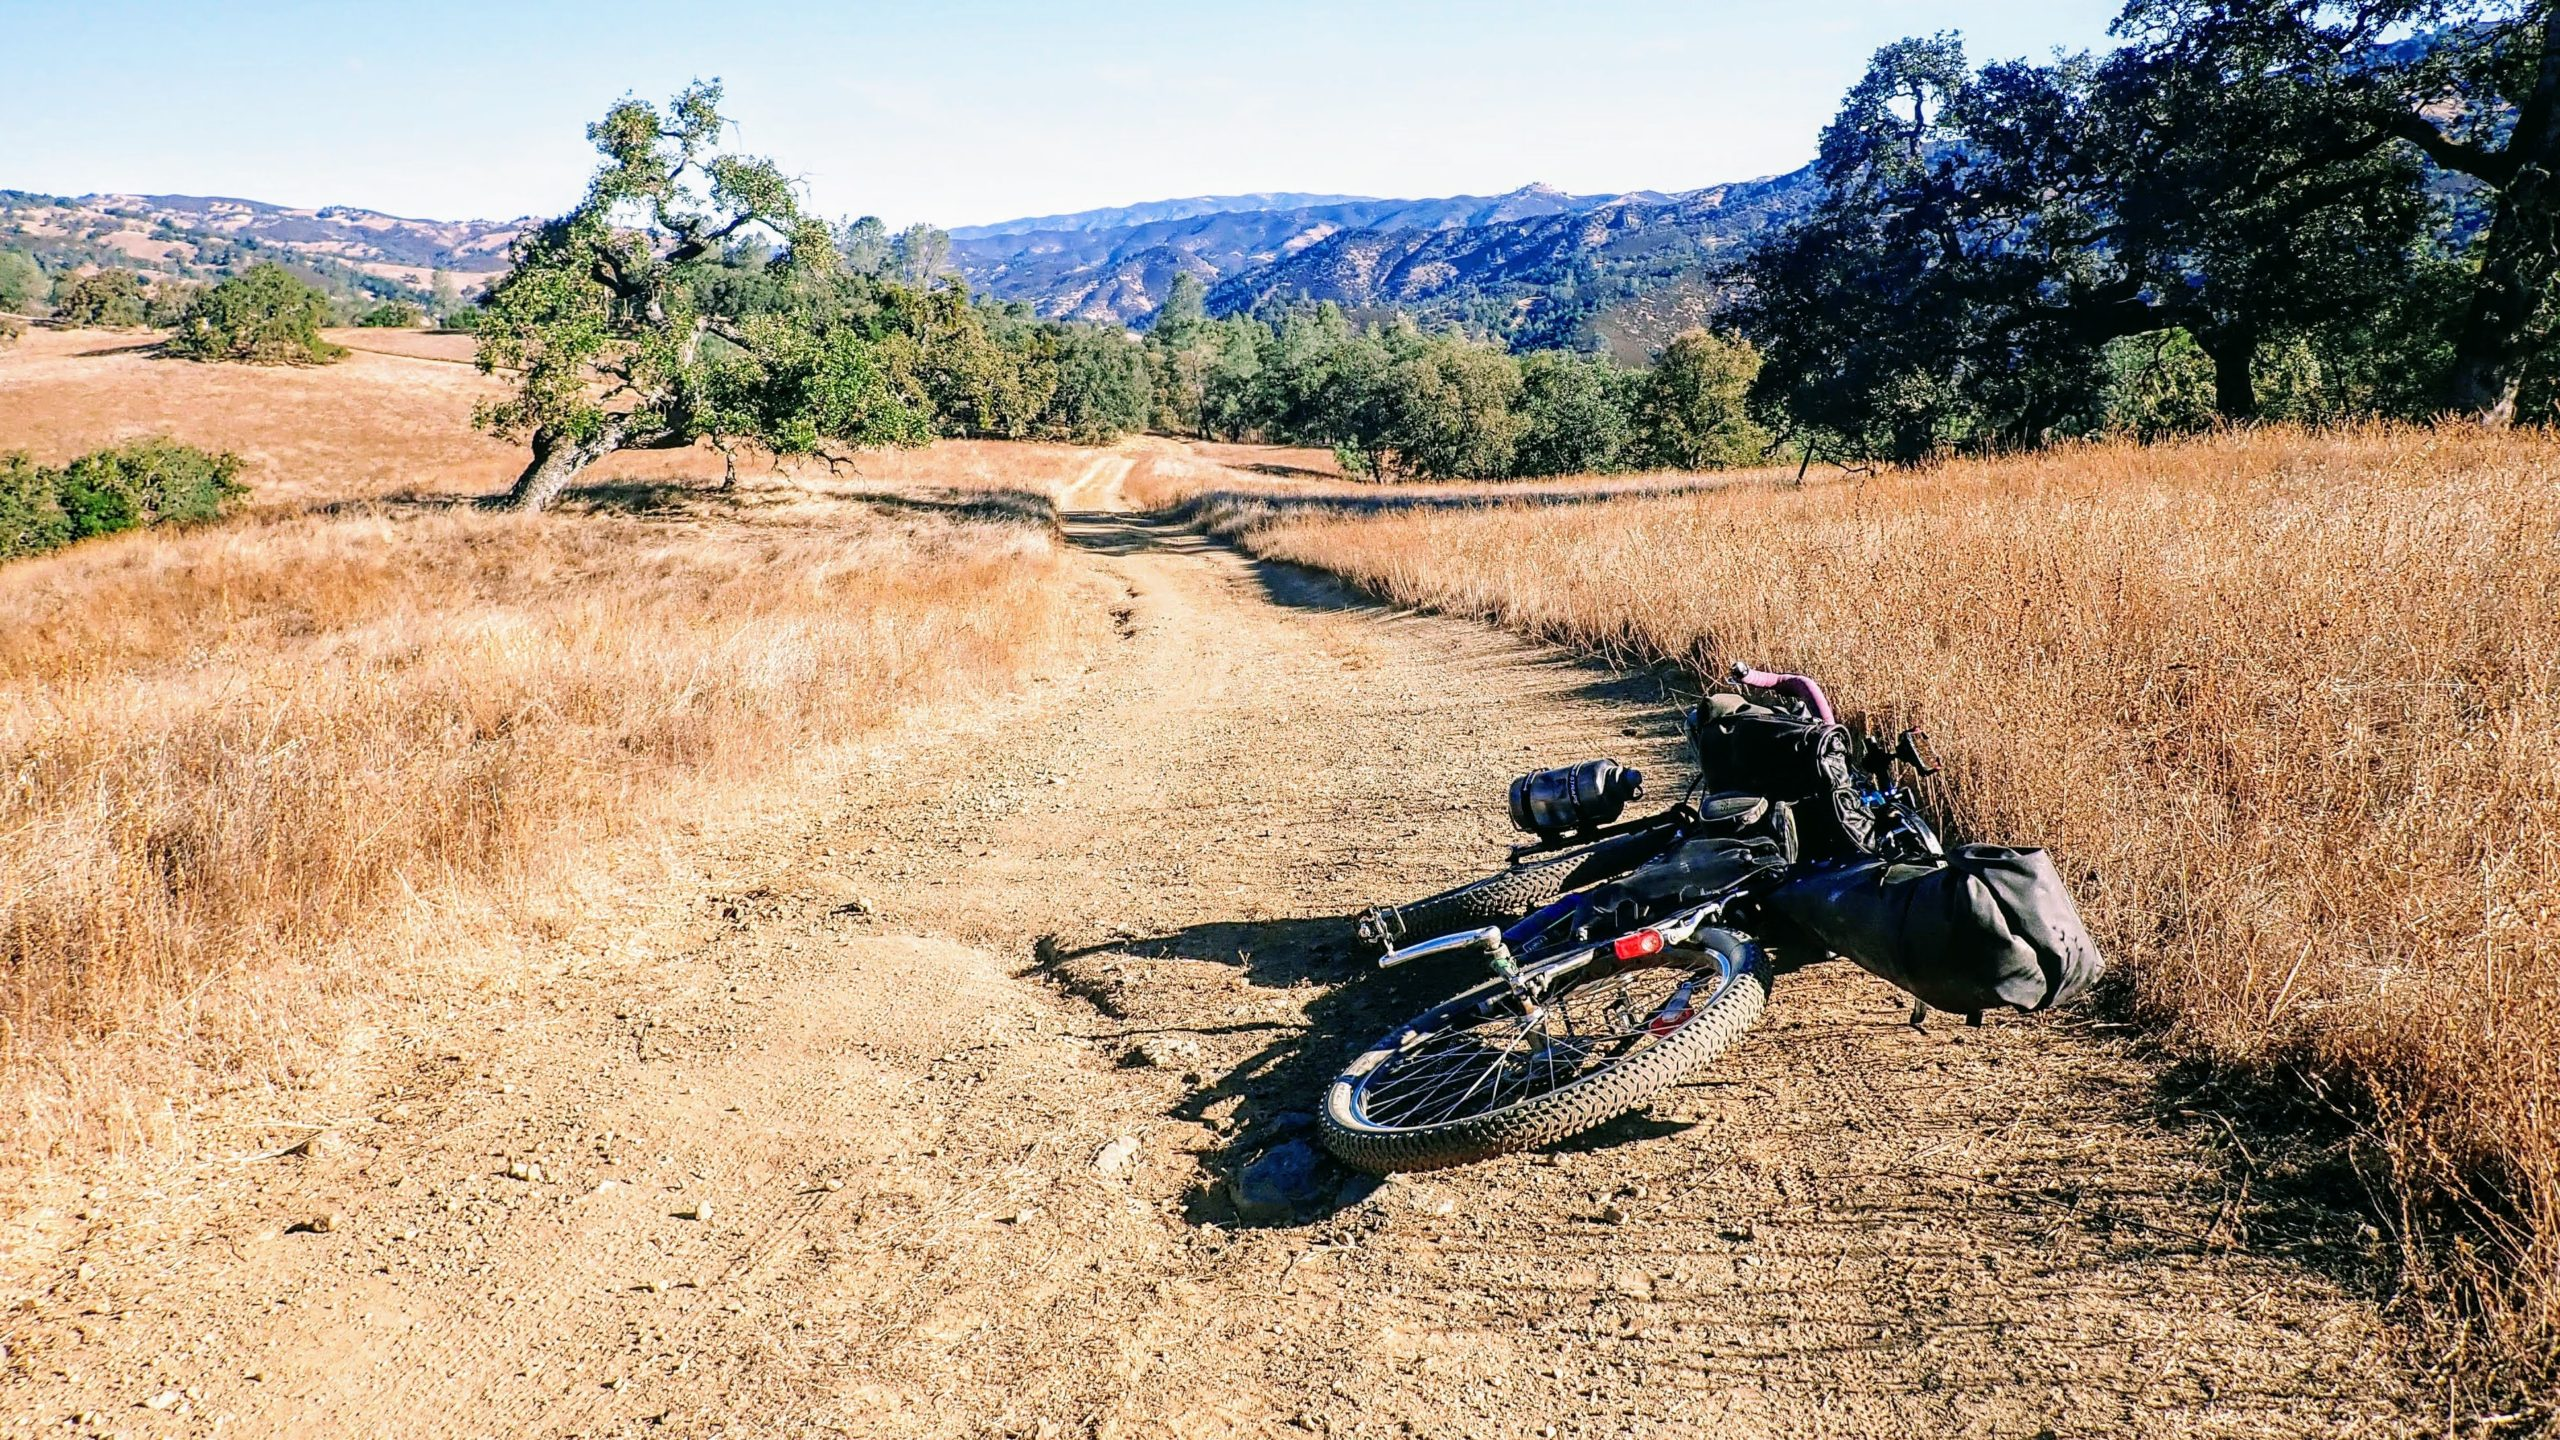 Bikepacking on fire road in Henry Coe State Park